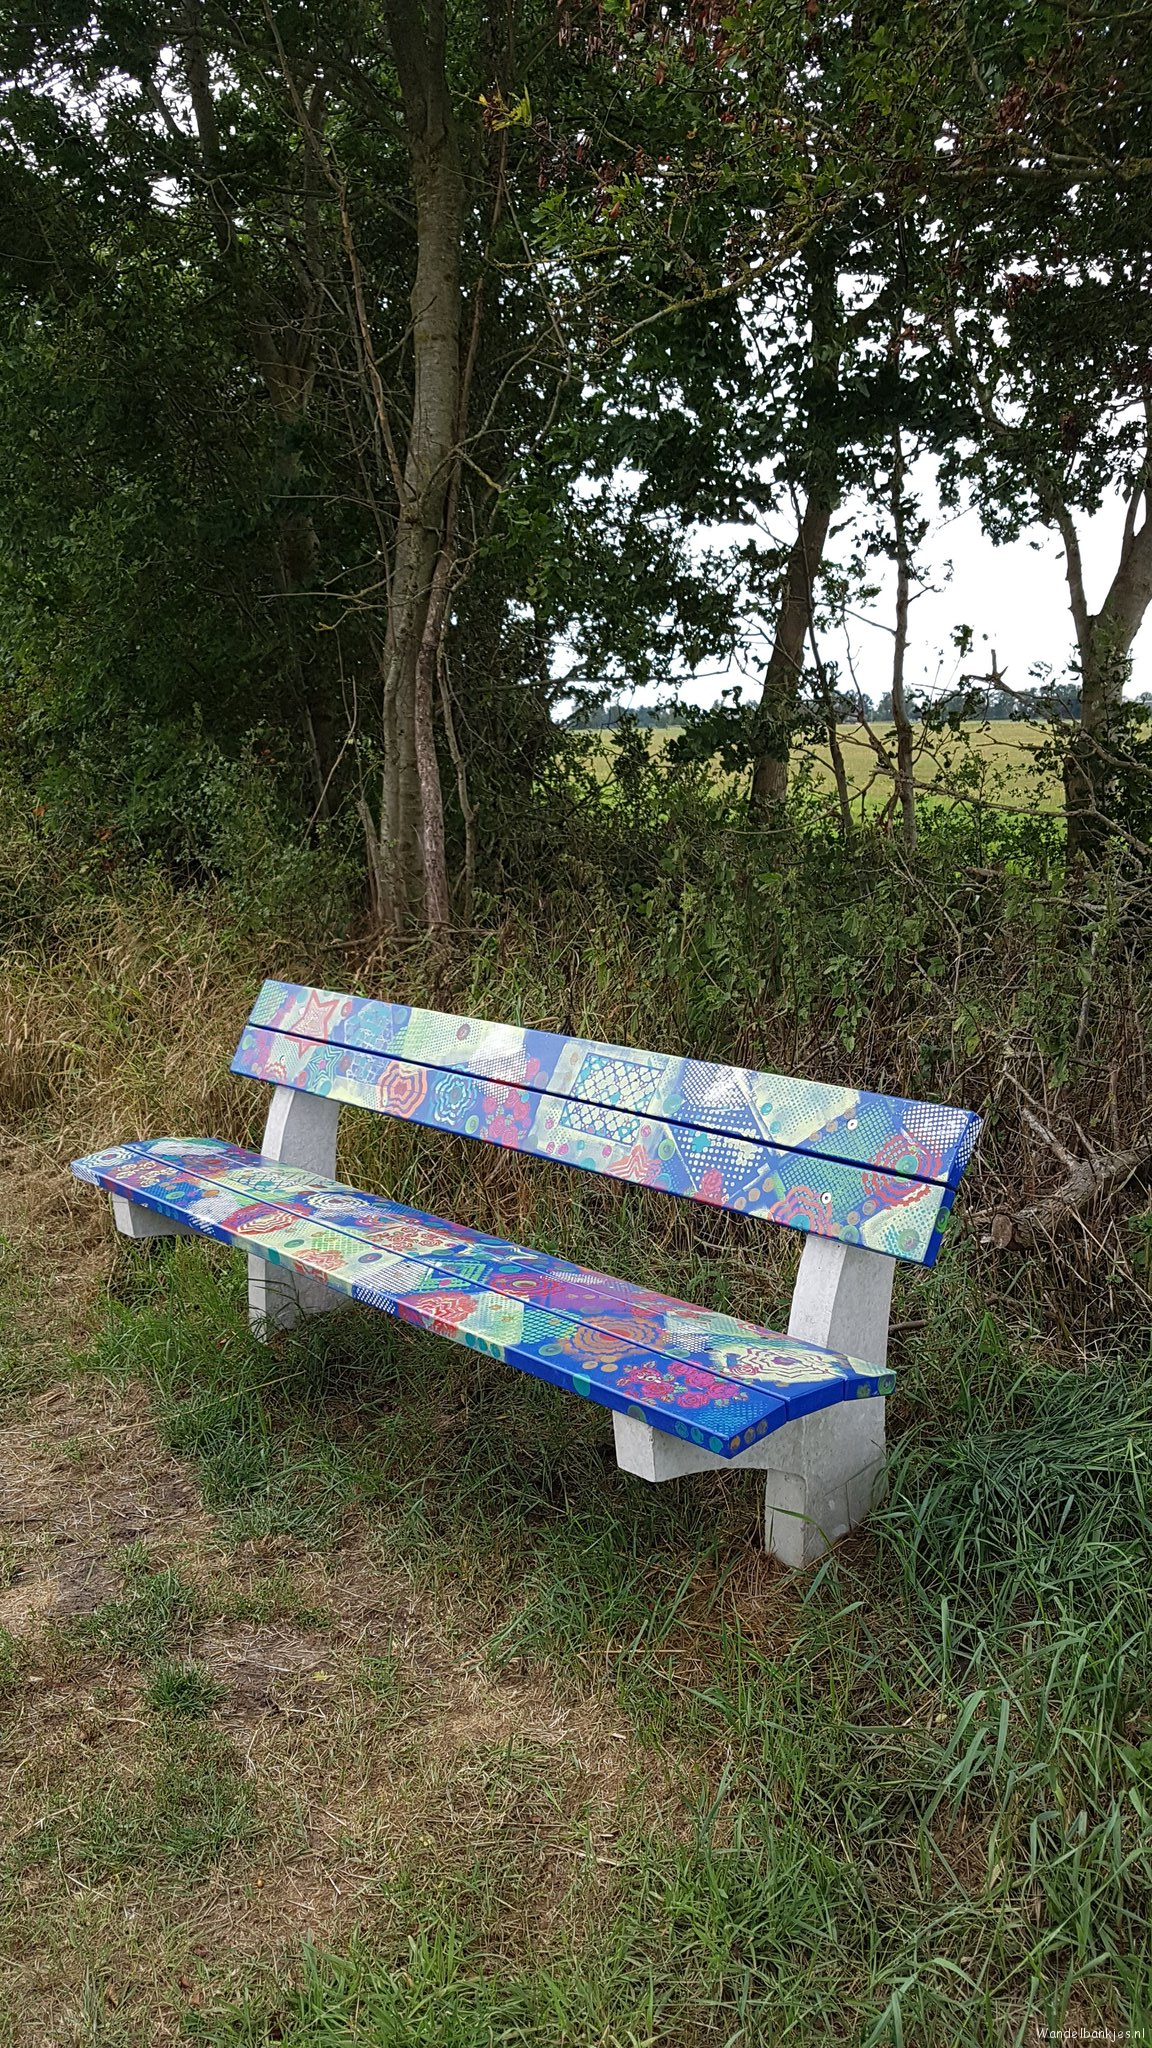 rt-gertdewit-a-beautiful-painted-bank-environment-earnewald-walking-benches-https-t-co-srndoam6bd